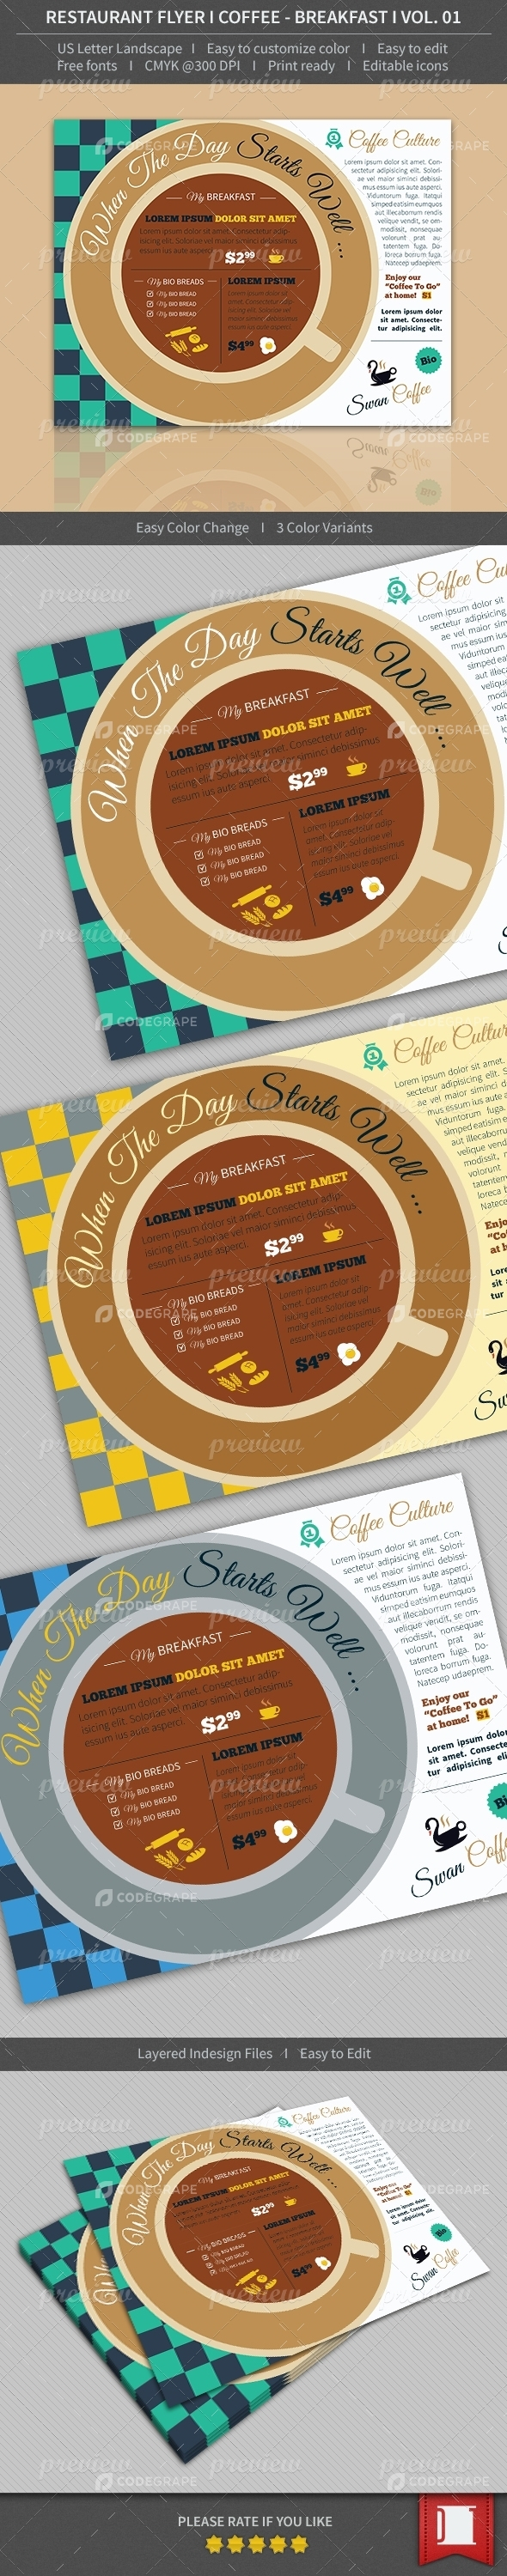 Restaurant Flyer - Coffee / Breakfast - Volume 01